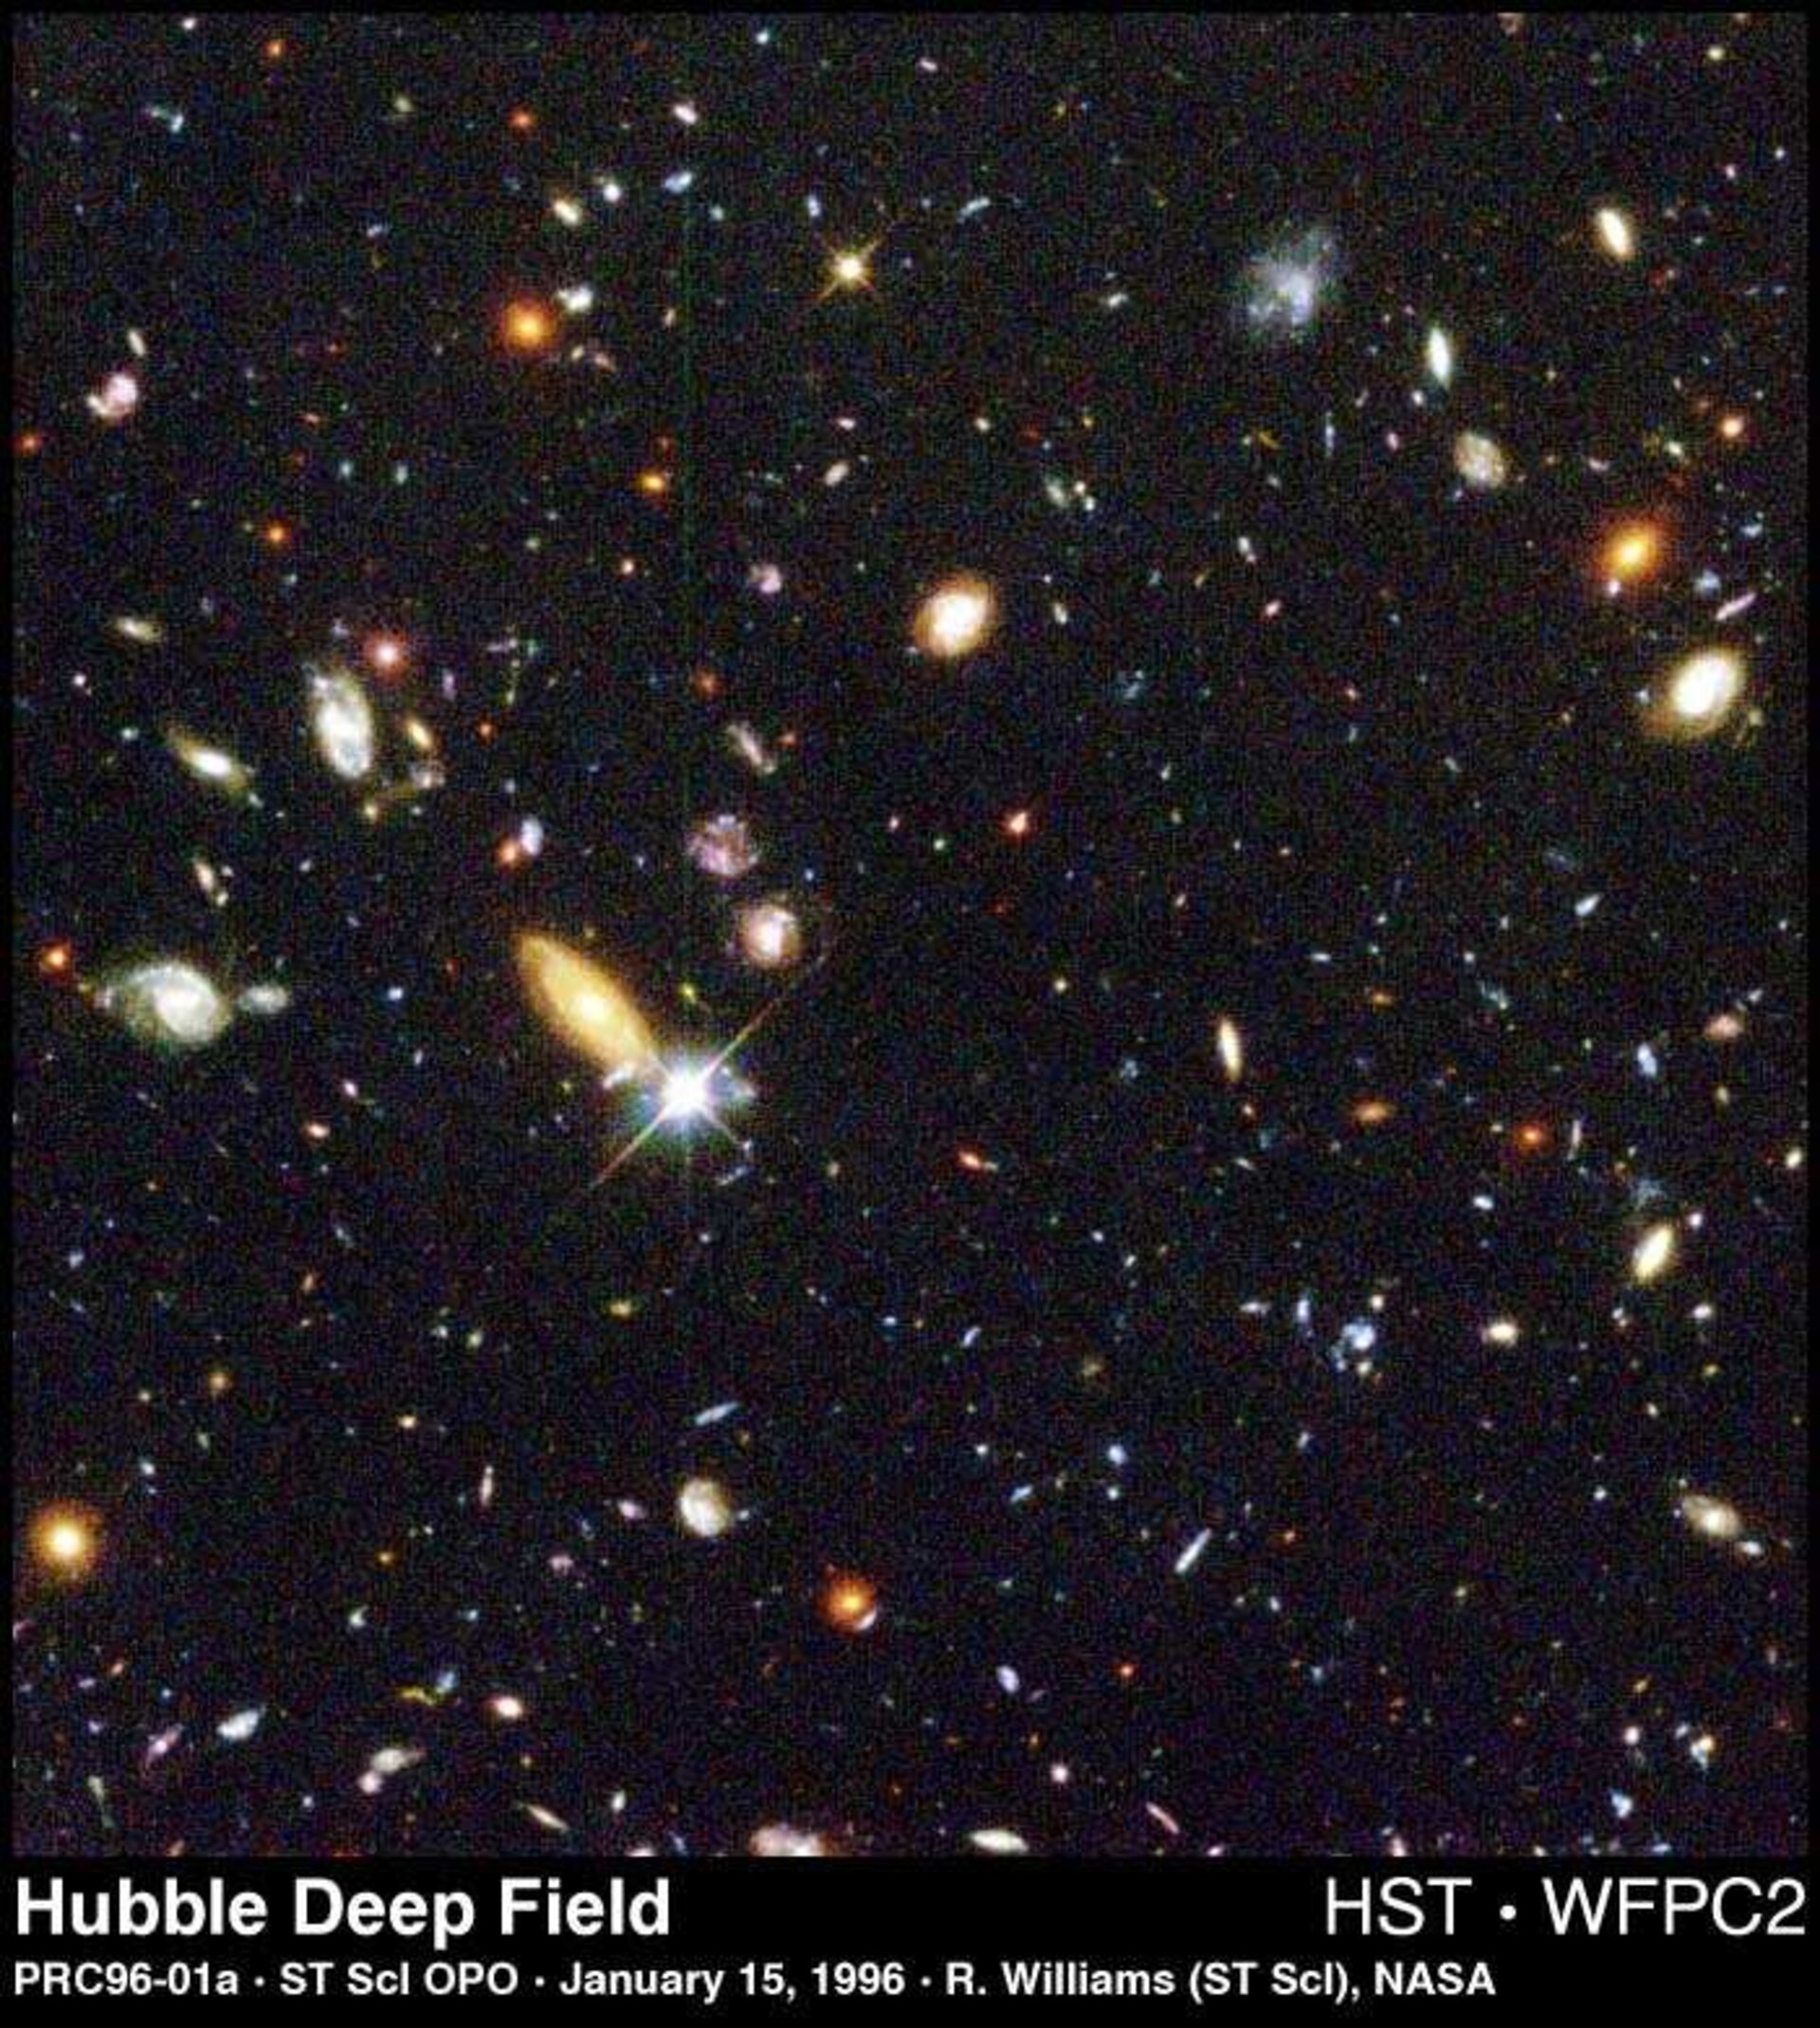 Hubble's Deep Field Image provided the first clues about numbers of stars